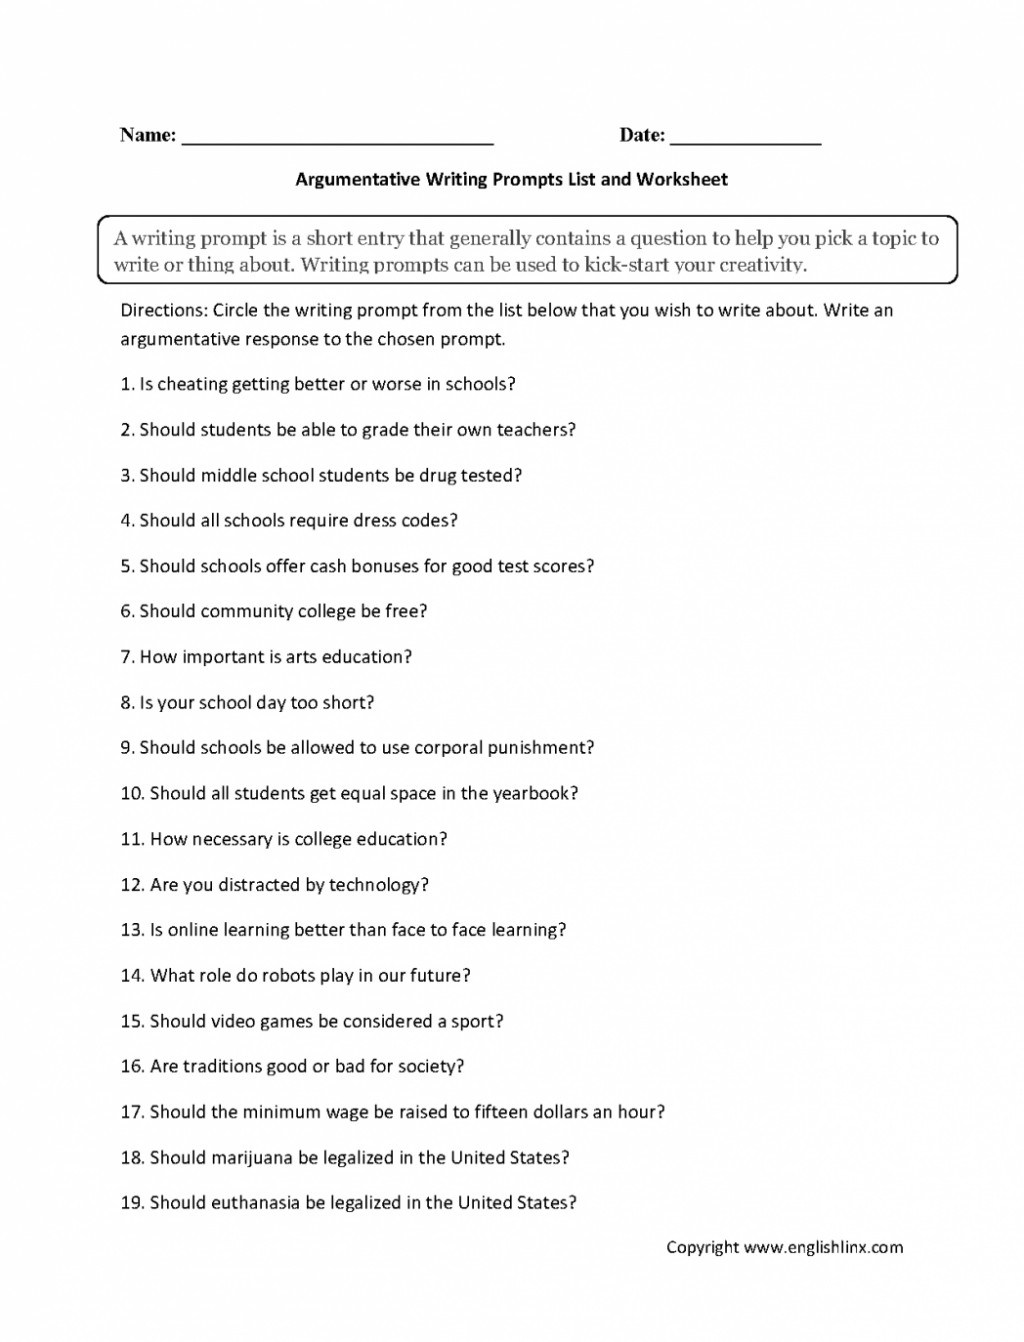 012 Essay Example Topics For Angumentative Writing Prompts Worksheets List Of Research Work Middle Schoolgumentativepersuasive Great Gatsby Easy College Good 1048x1374 Magnificent An Argumentative Essays High School Large